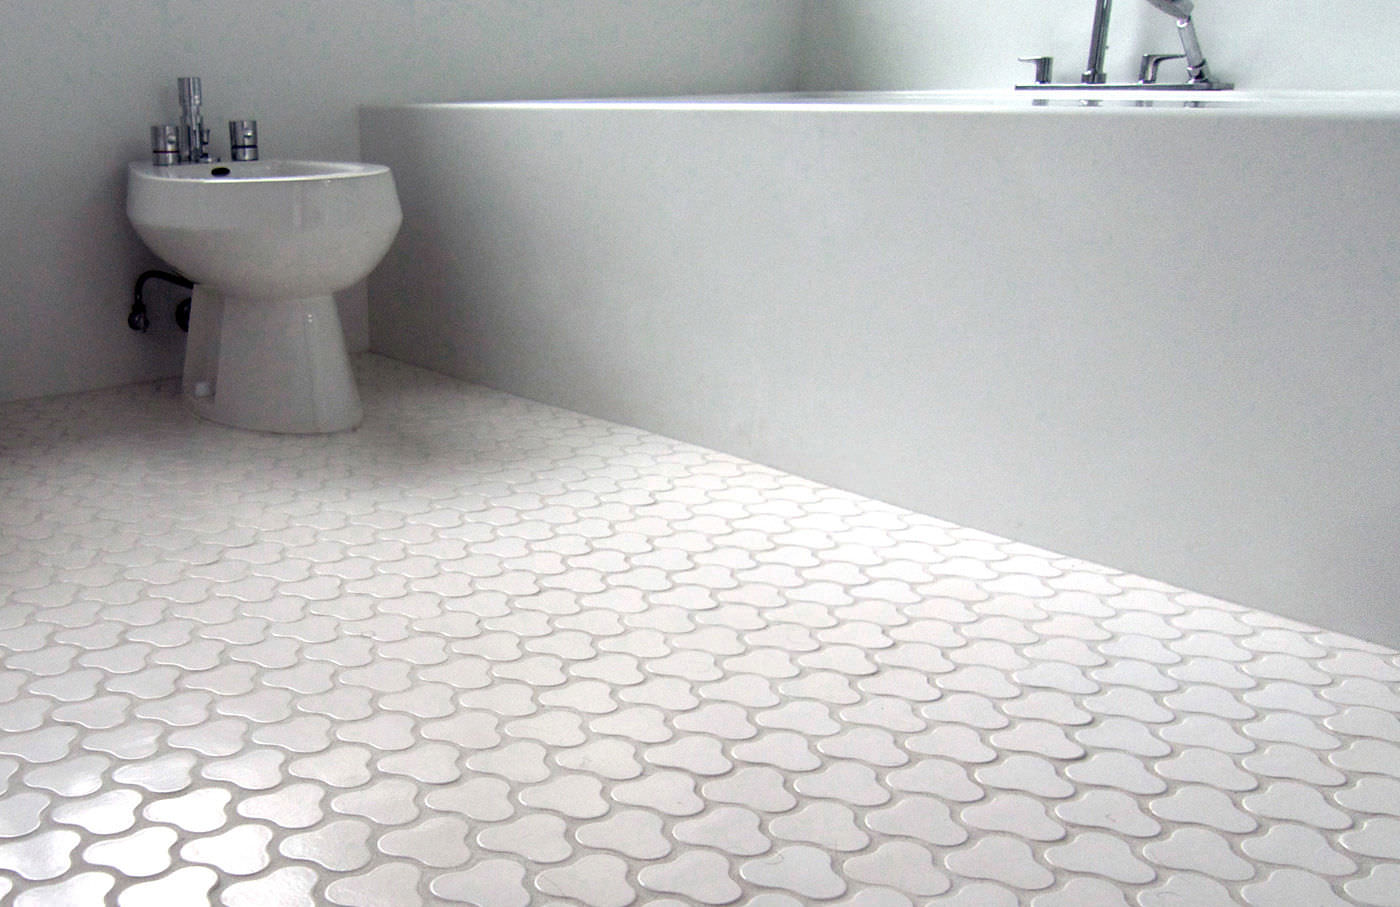 Indoor Tile Bathroom Floor Ceramic BOM Daniel Ogassian - Tiling a bathroom floor where to start